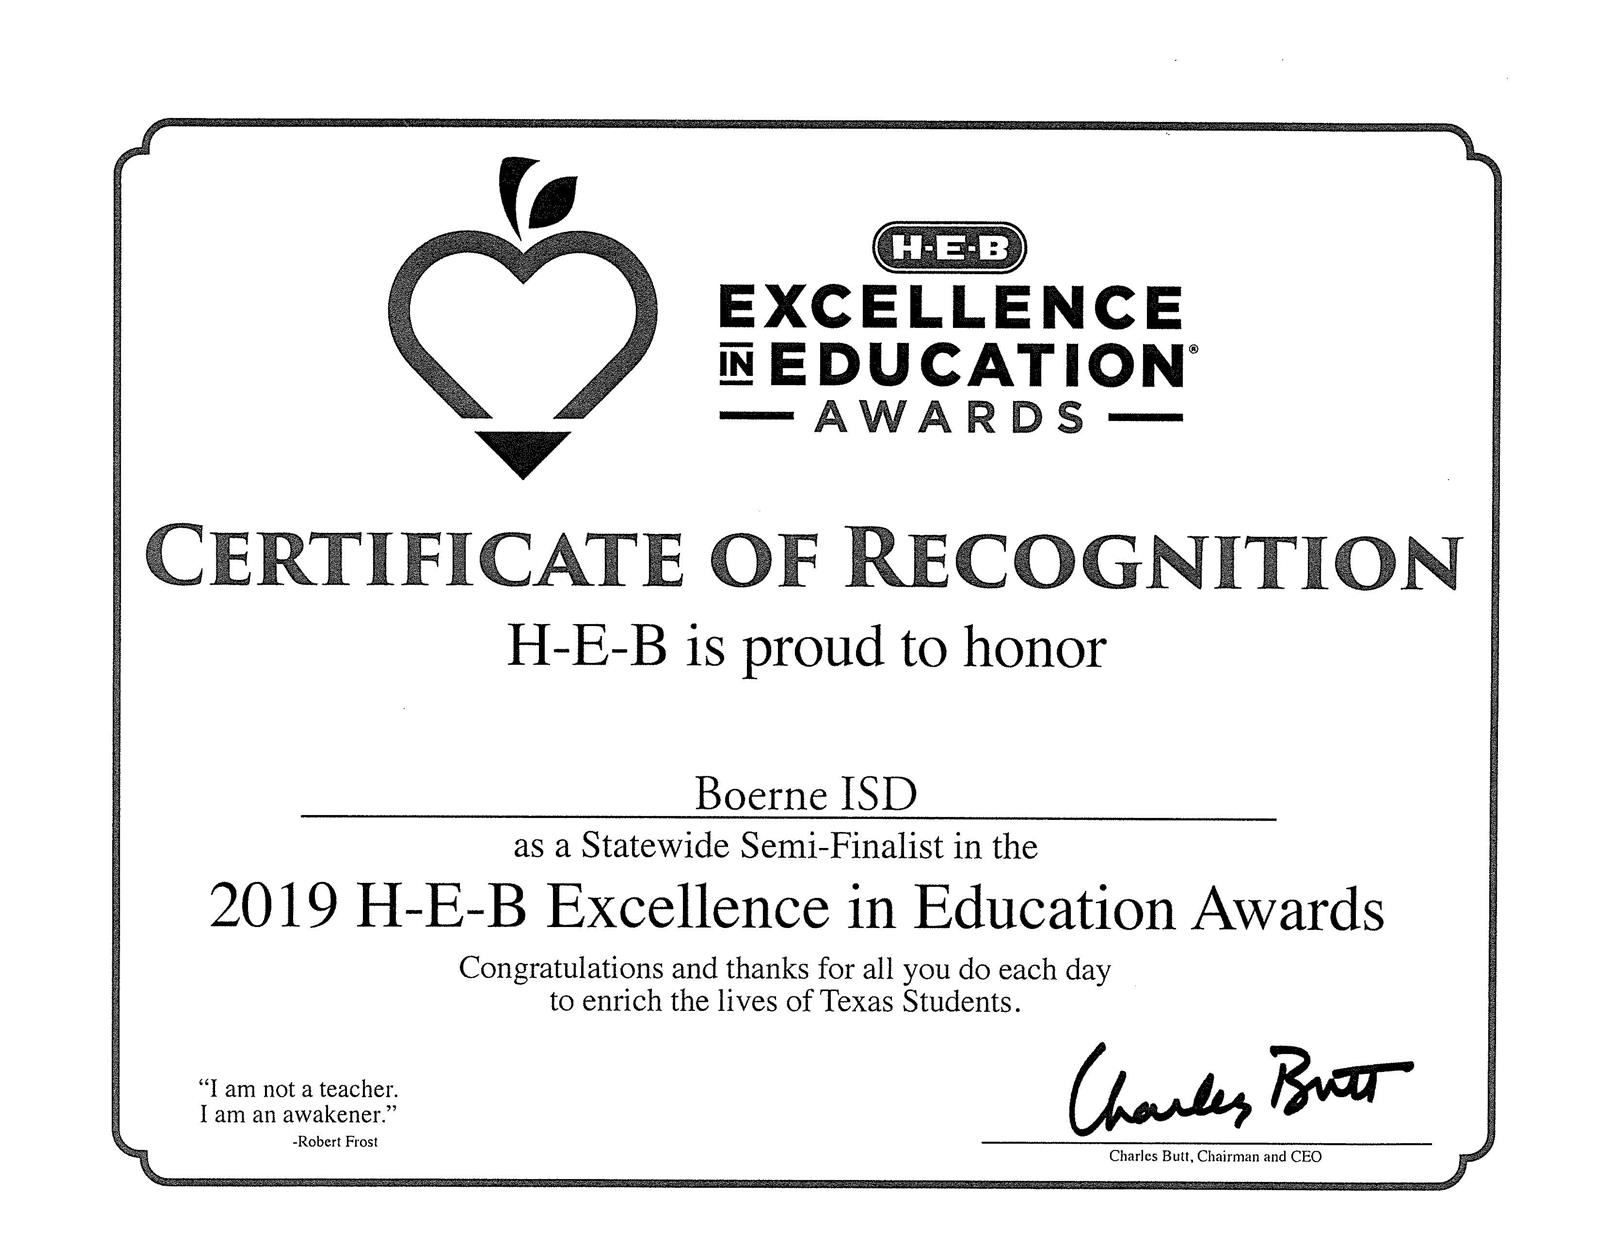 BISD Selected as 2019 HEB Excellence Award Semi-Finalist